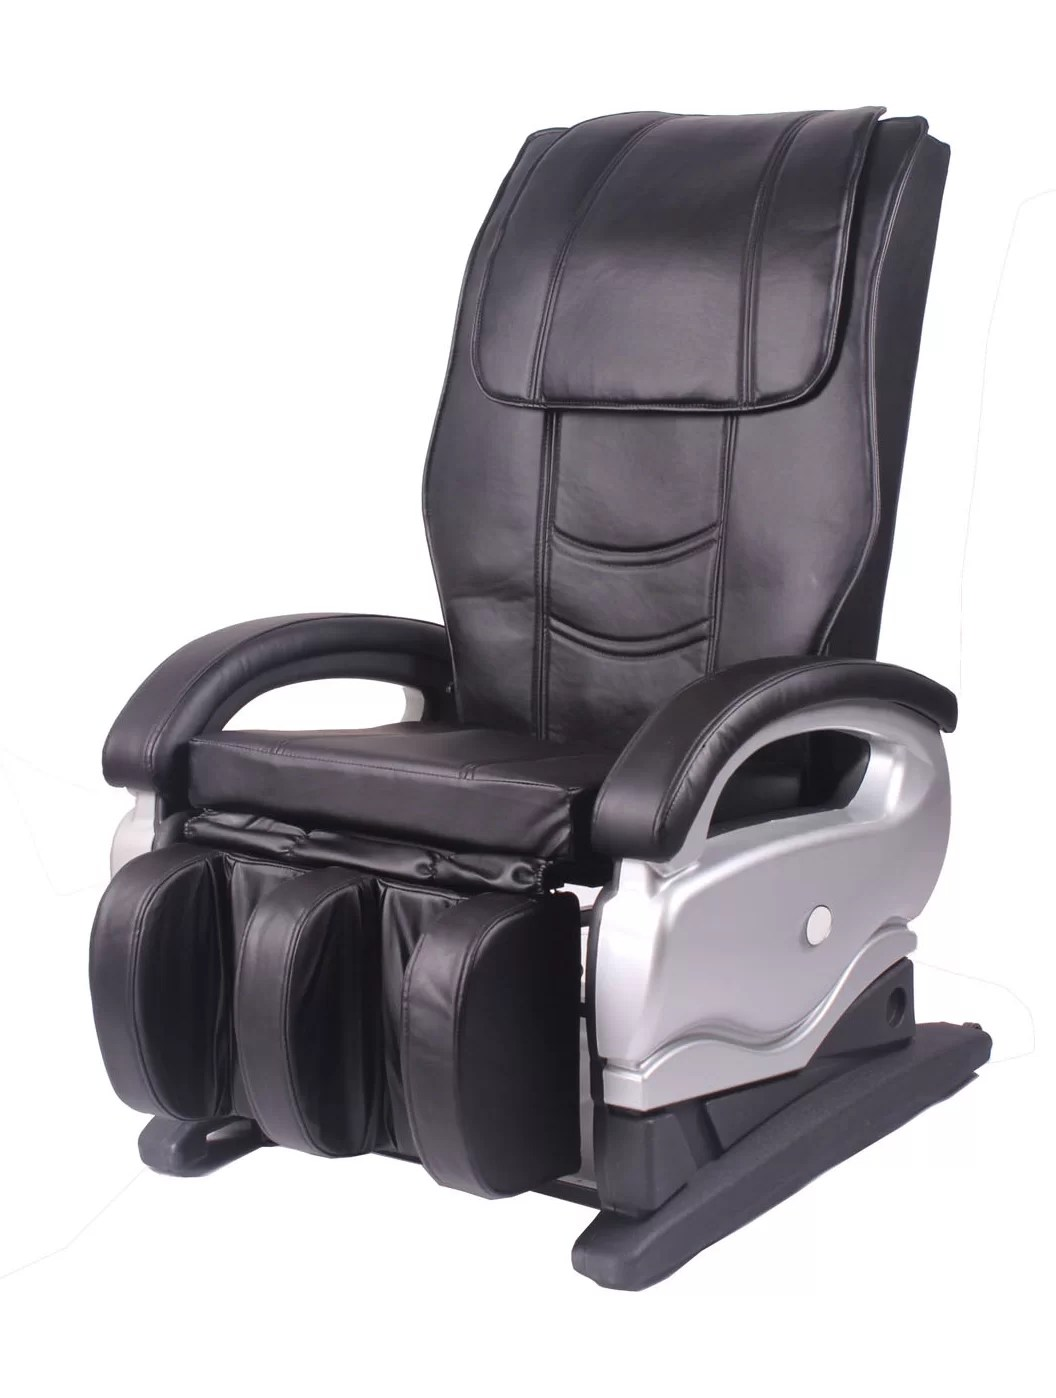 Electric Recliner Leather Chairs Newacme Llc Mcombo Leather Electric Reclining Massage